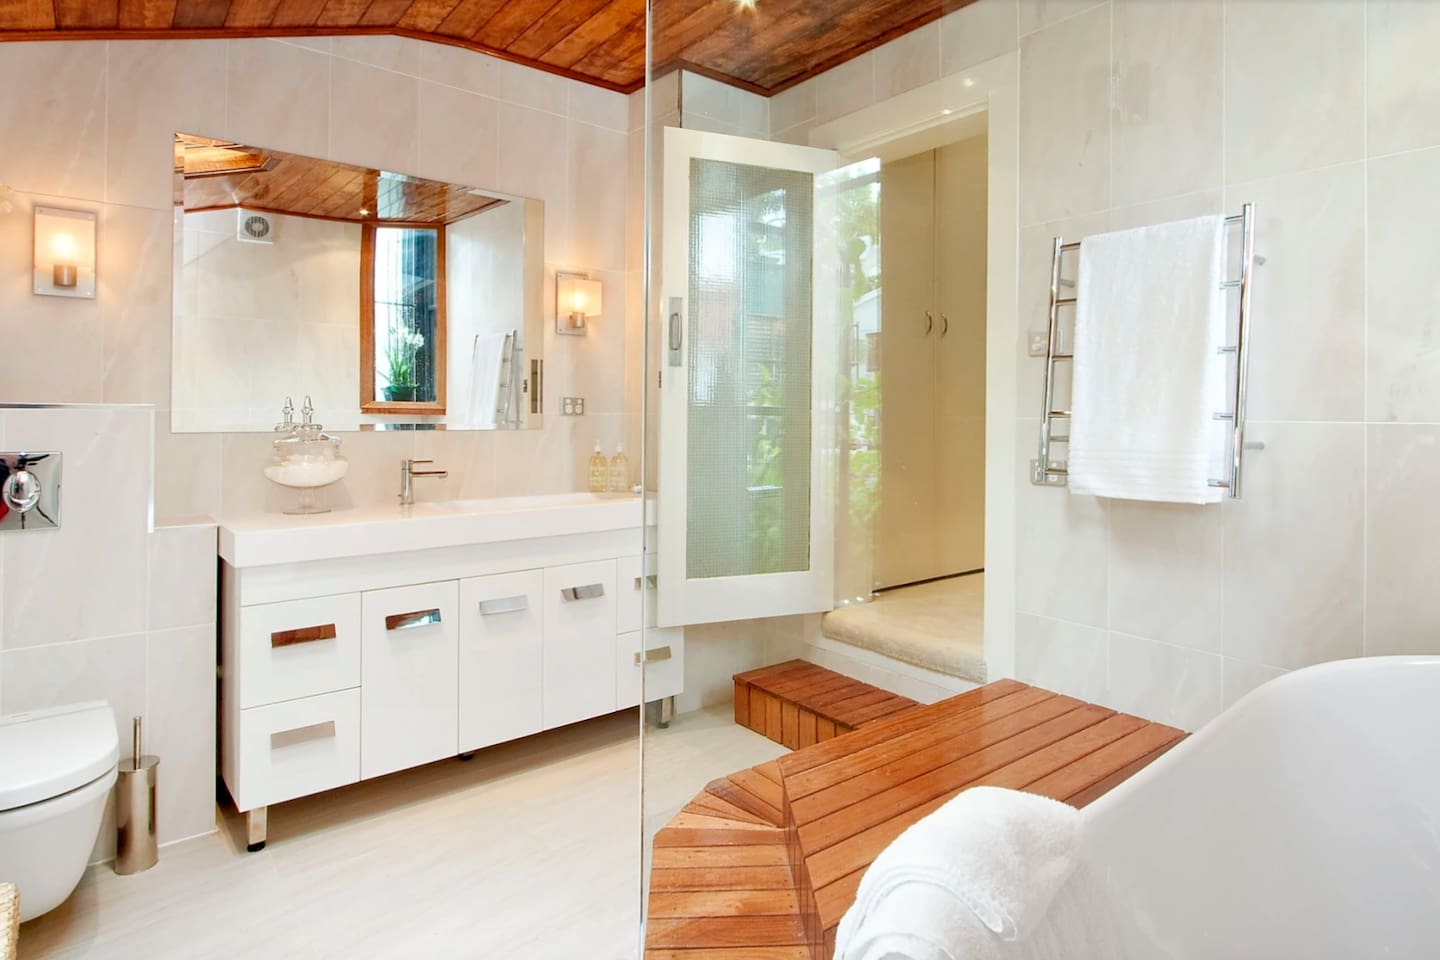 Master bath - luxurious bathtub, room for 2. Rainfall shower.